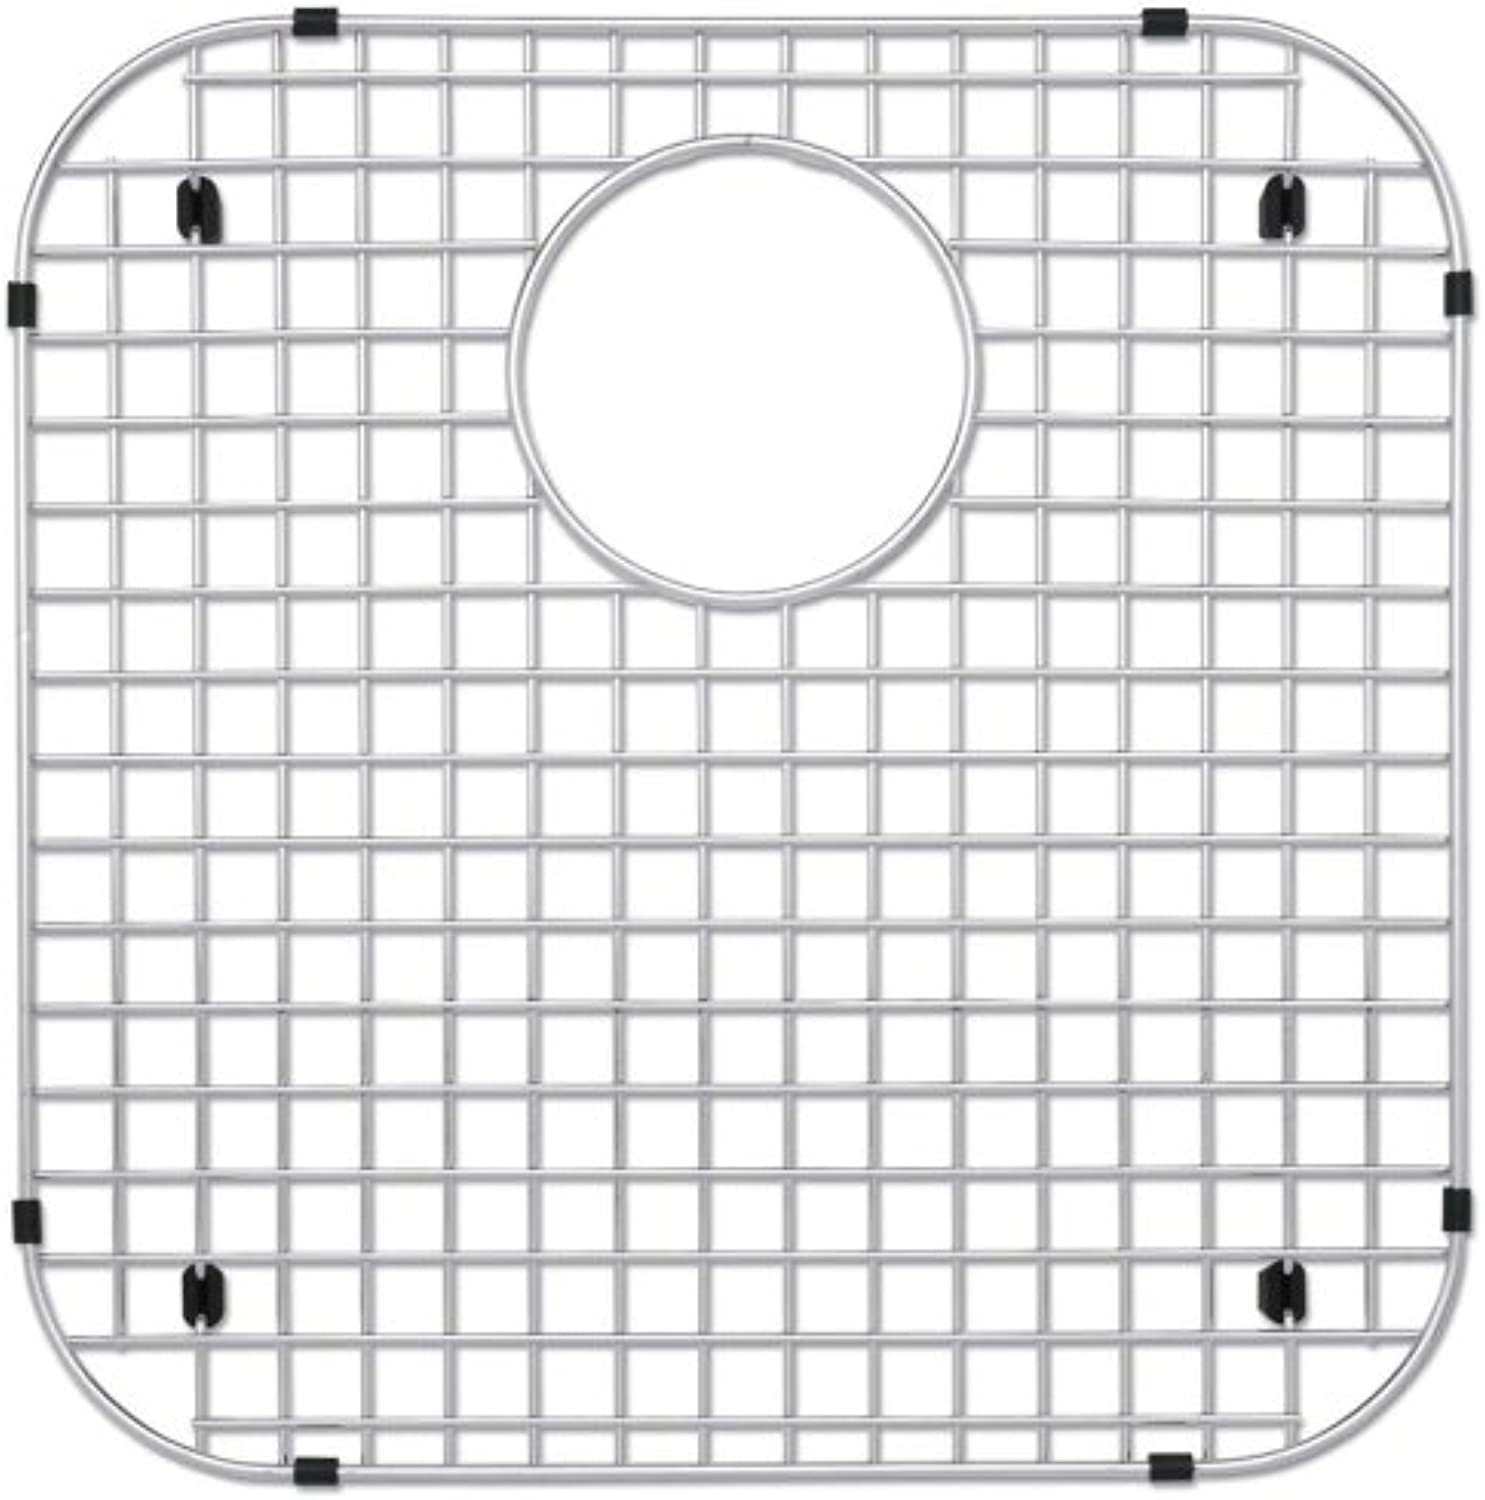 whiteo 221-019 Stainless Steel Sink Grid by whiteo